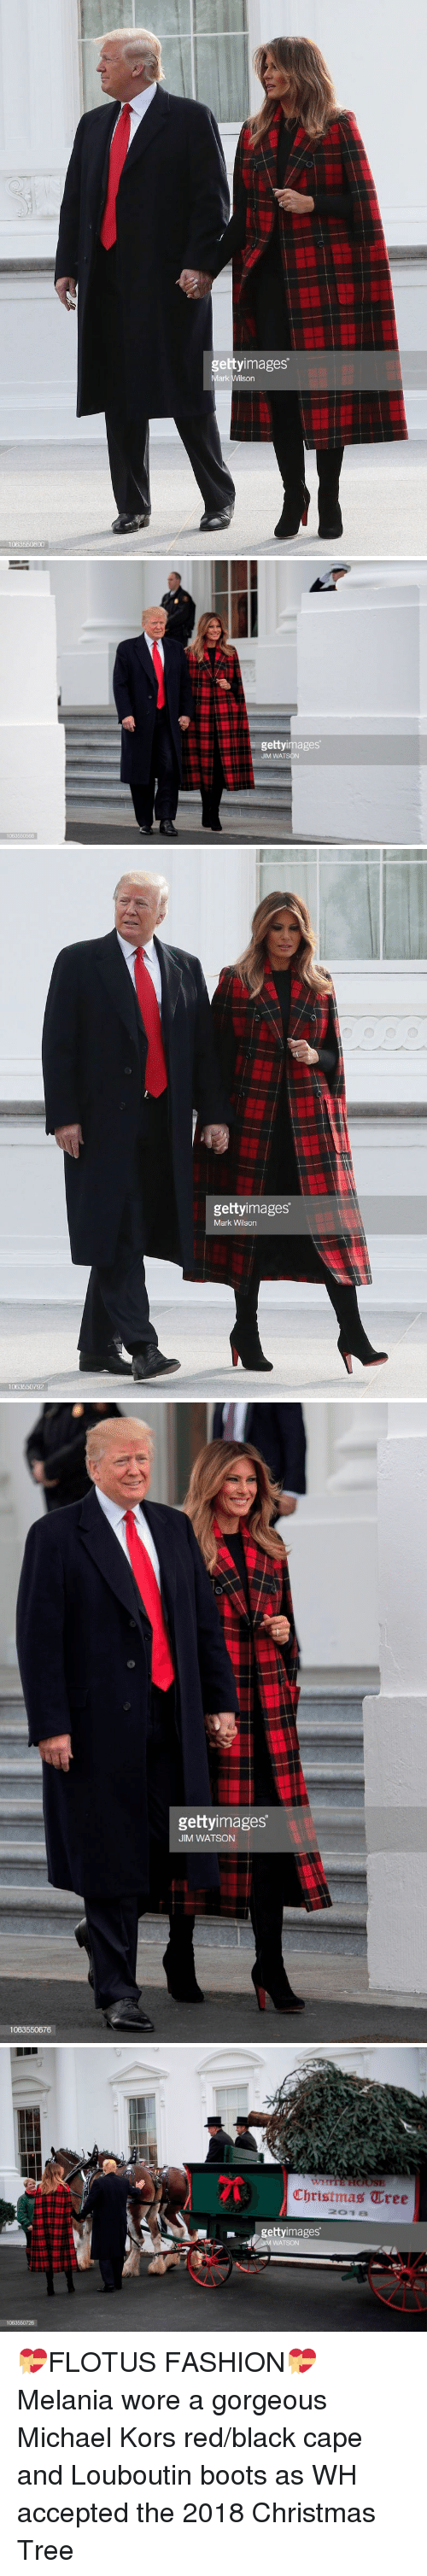 Christmas, Fashion, and Michael Kors: gettyimages  Mark Wilson   gettyimages  JIM WATSON   t.  gettyimages  Mark Wilson  1063550792   gettyimages  JIM WATSON  1063550676   Christmas ¢tre  20개 8  gettyimages  JIM WATSON  1063550726 💝FLOTUS FASHION💝 Melania wore a gorgeous Michael Kors red/black cape and Louboutin boots as WH accepted the 2018 Christmas Tree